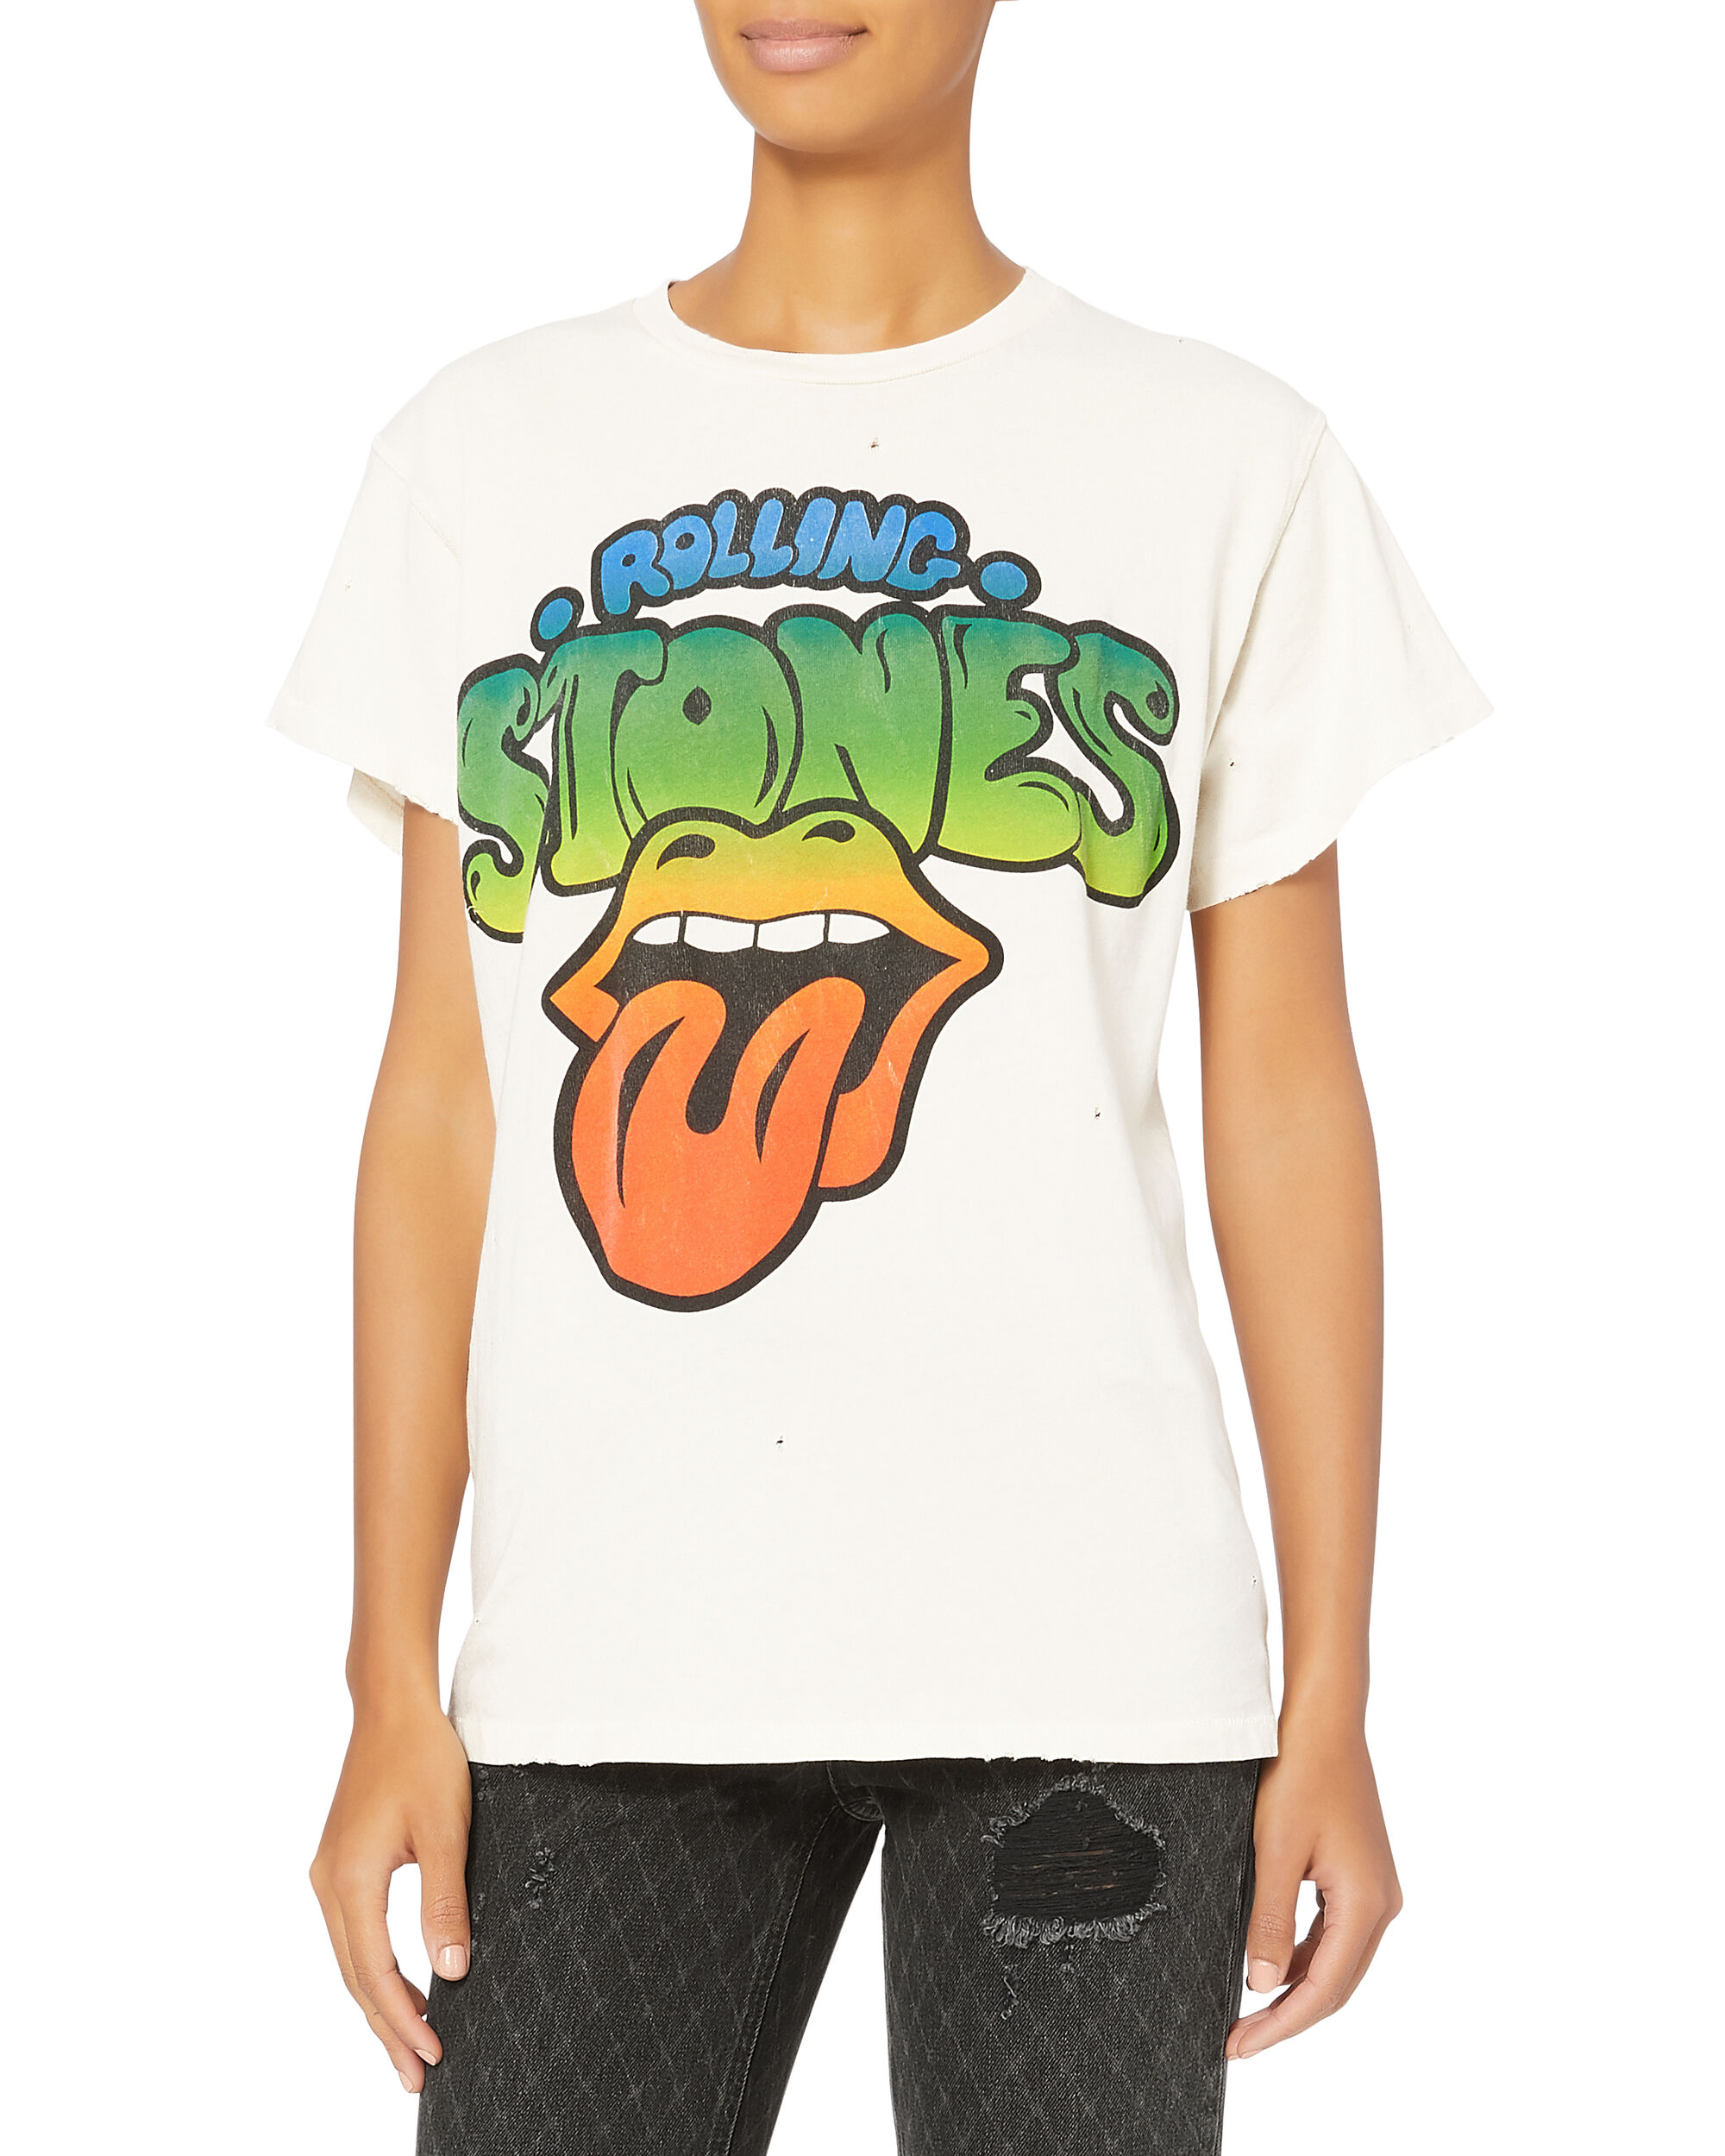 Rolling Stones T-Shirt, WHITE, hi-res